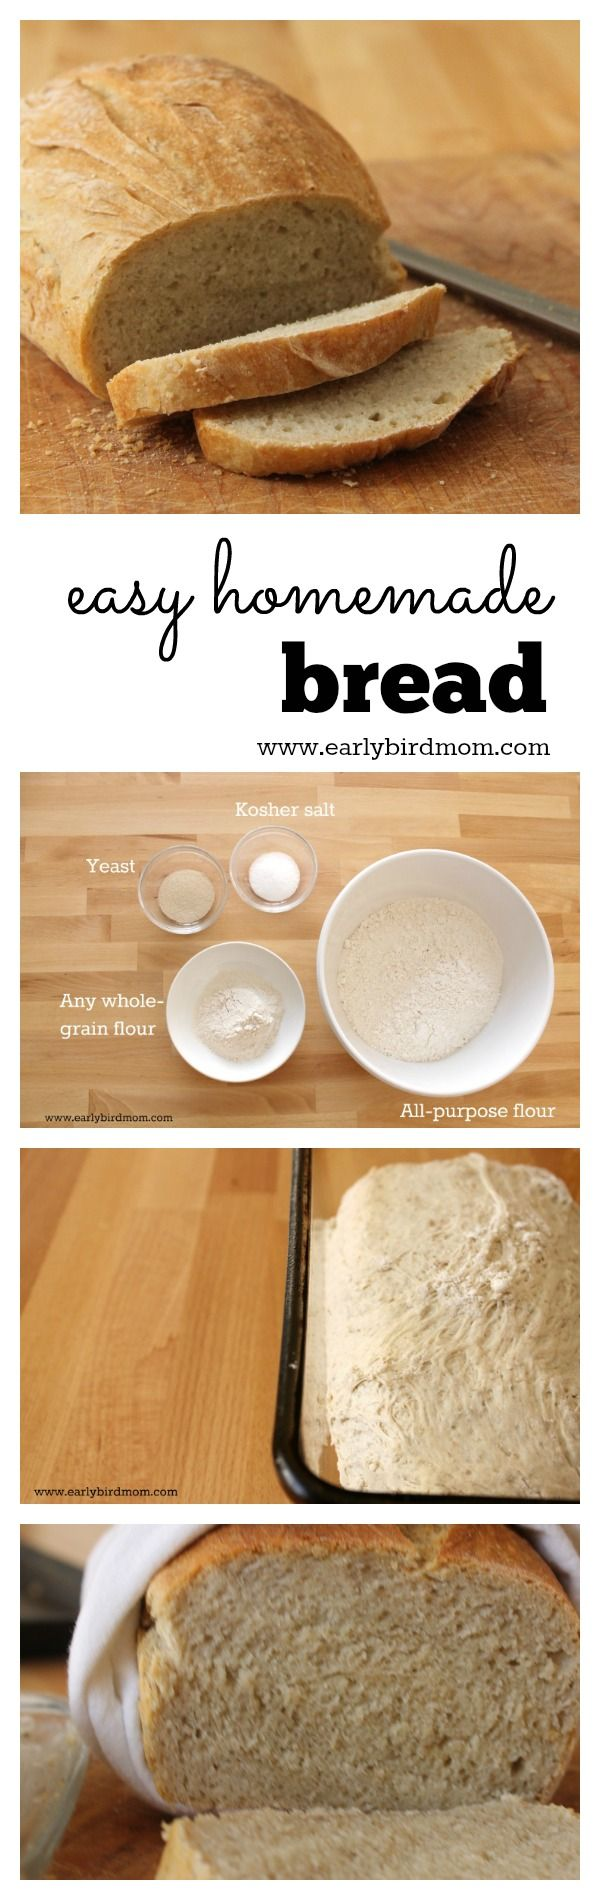 Easy homemade wheat bread  It  39 s so simple that you can have fresh bread for dinner every night  No knead  no fuss  This quick and healthy recipe uses just 4 ingredients  plus water   This recipe is so reliable   it works every time